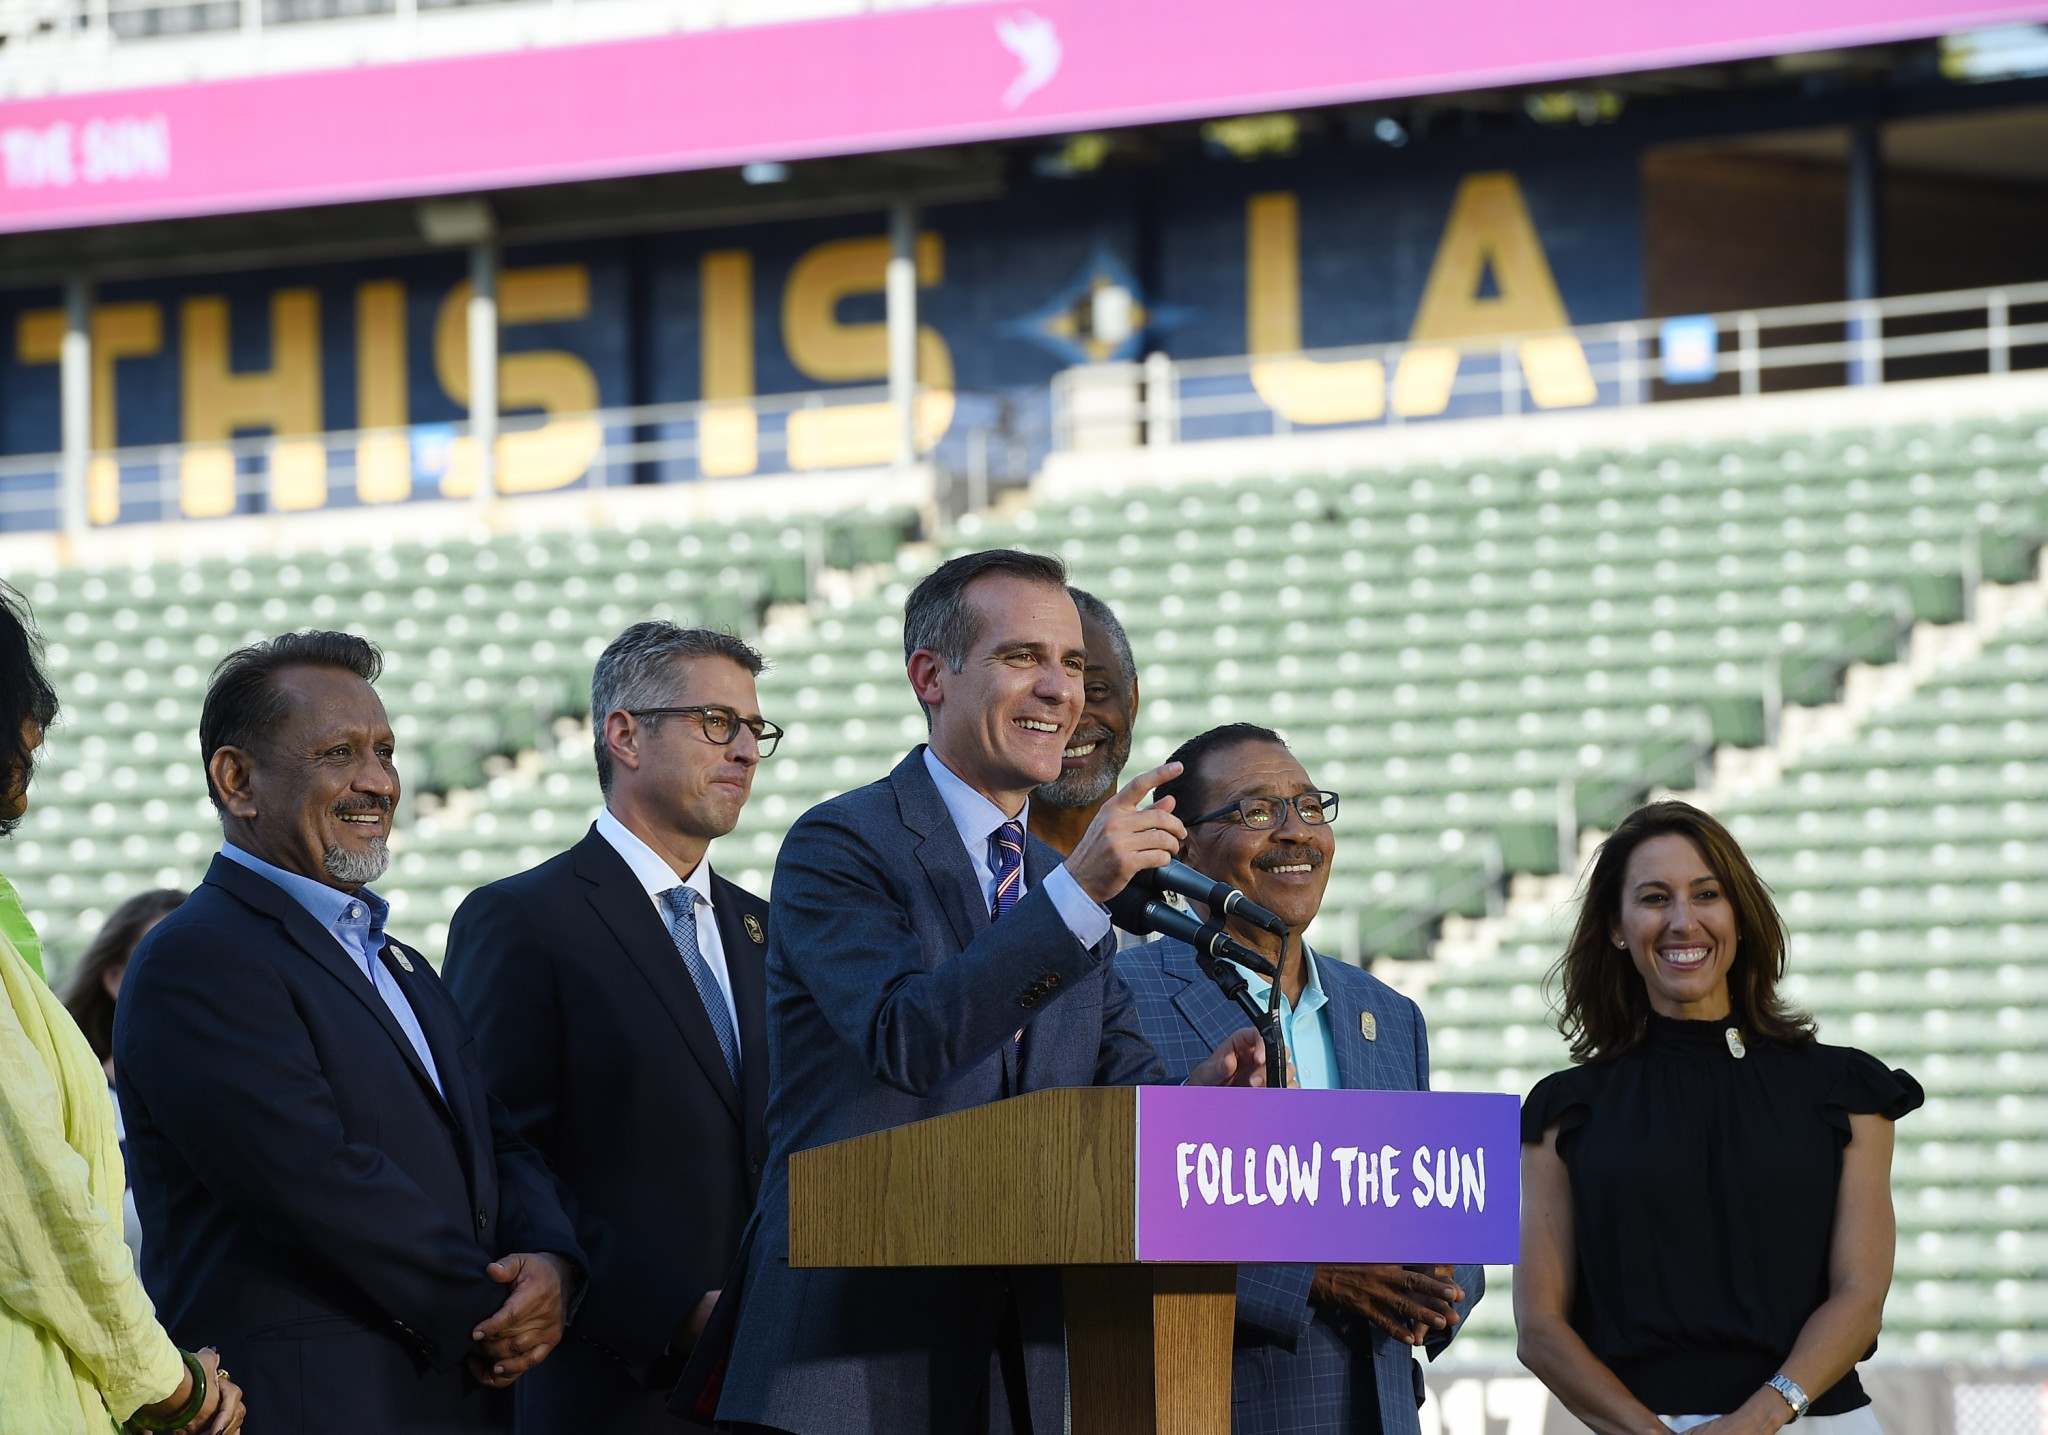 Los Angeles 2028 calls for public support at key council meeting